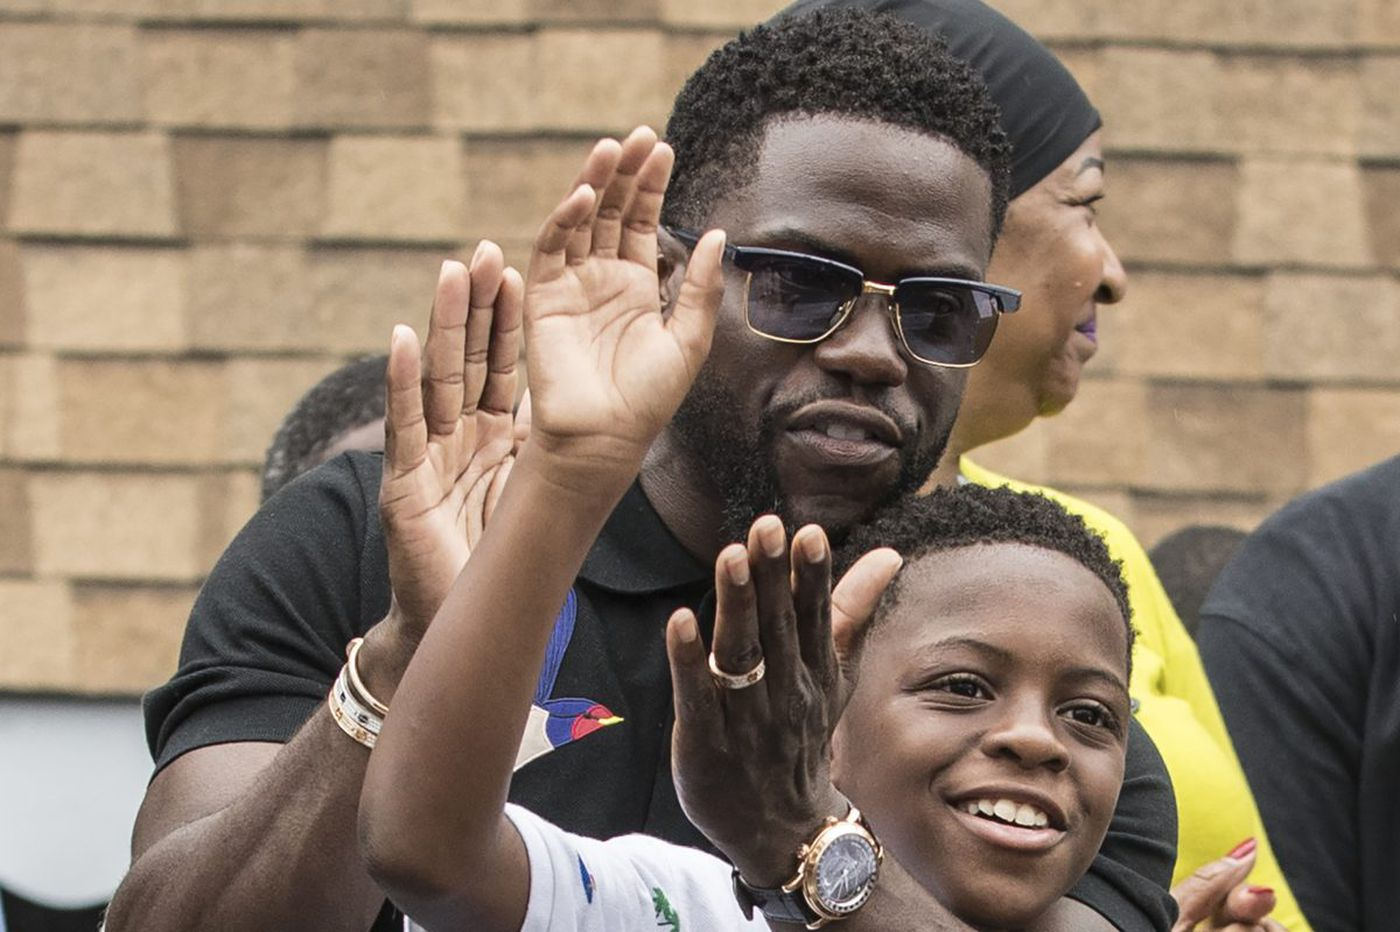 Philly celebrated Kevin Hart yesterday. He vowed to return for a bigger fest next year